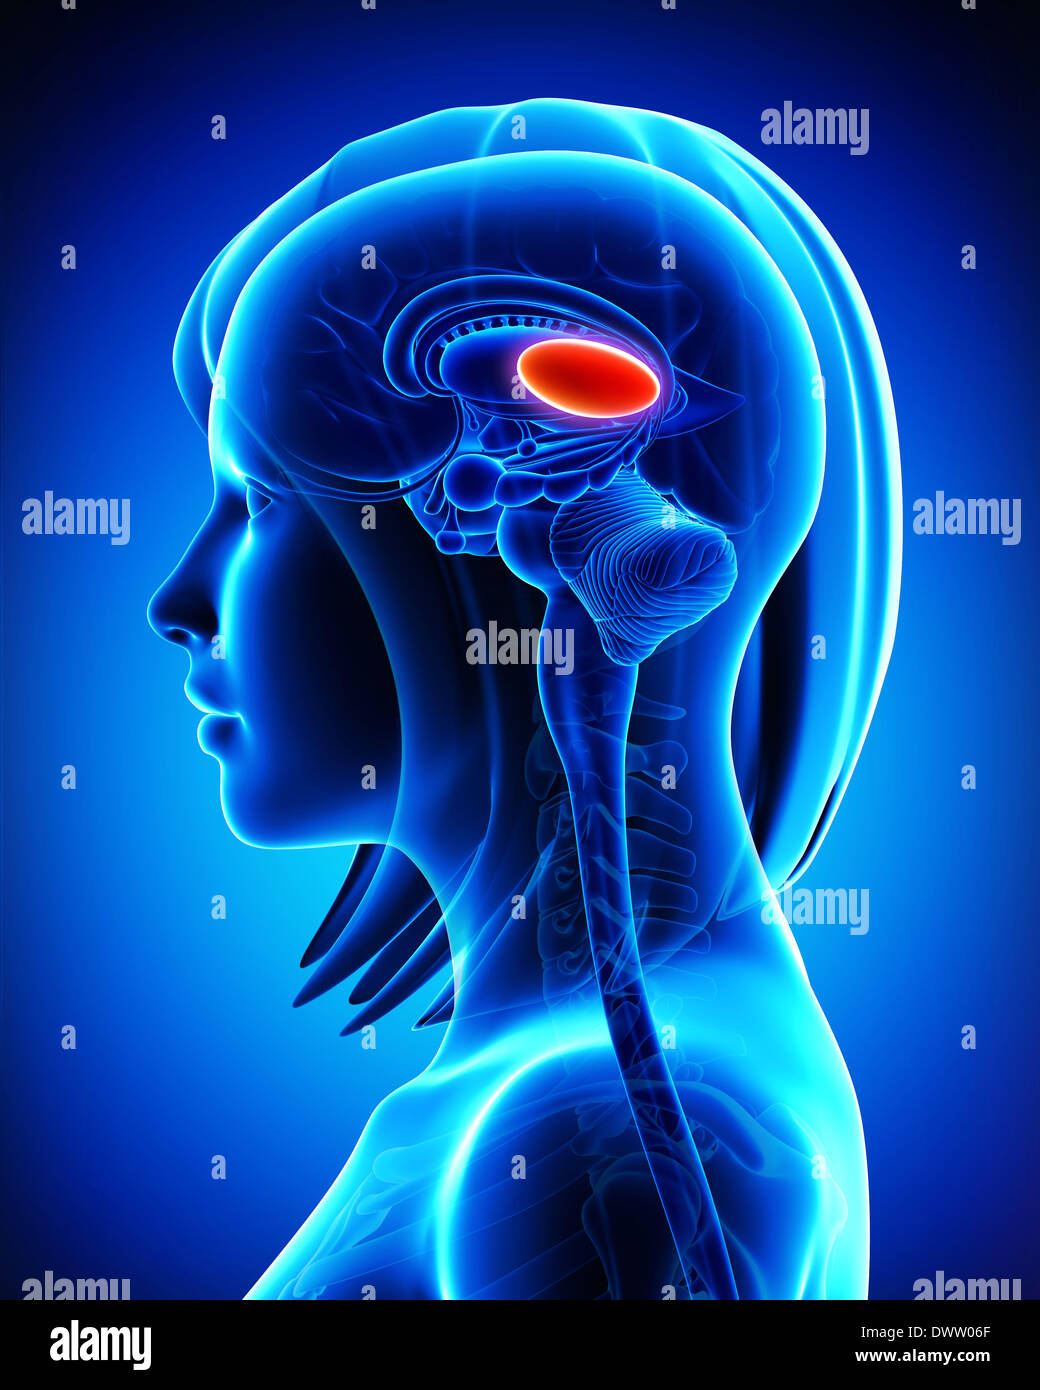 Thalamus brain drawing - Stock Image